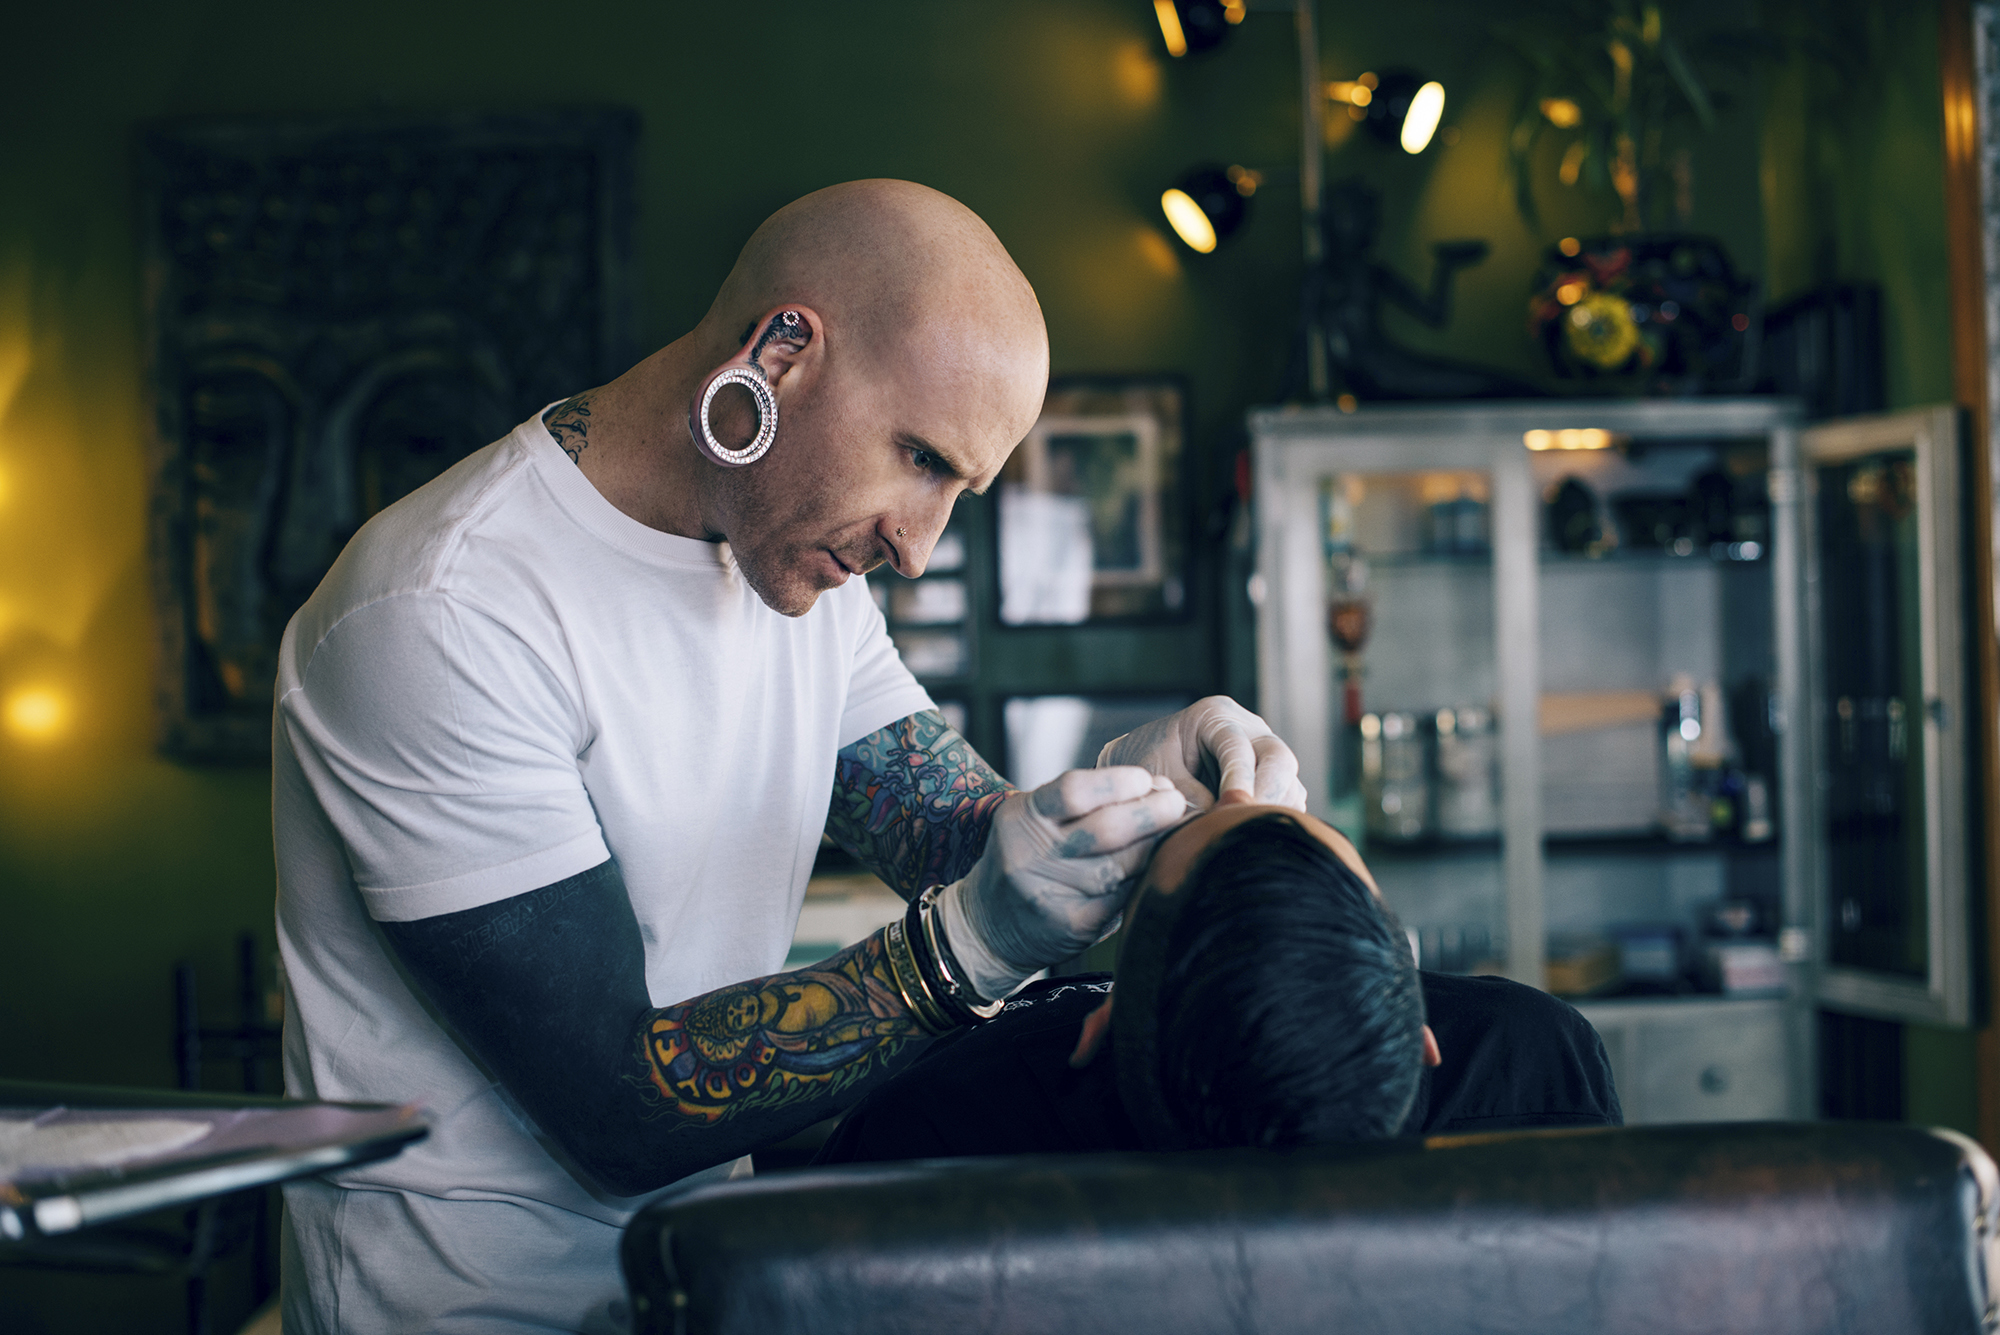 New report cites risks youths face when getting tattoos and piercings